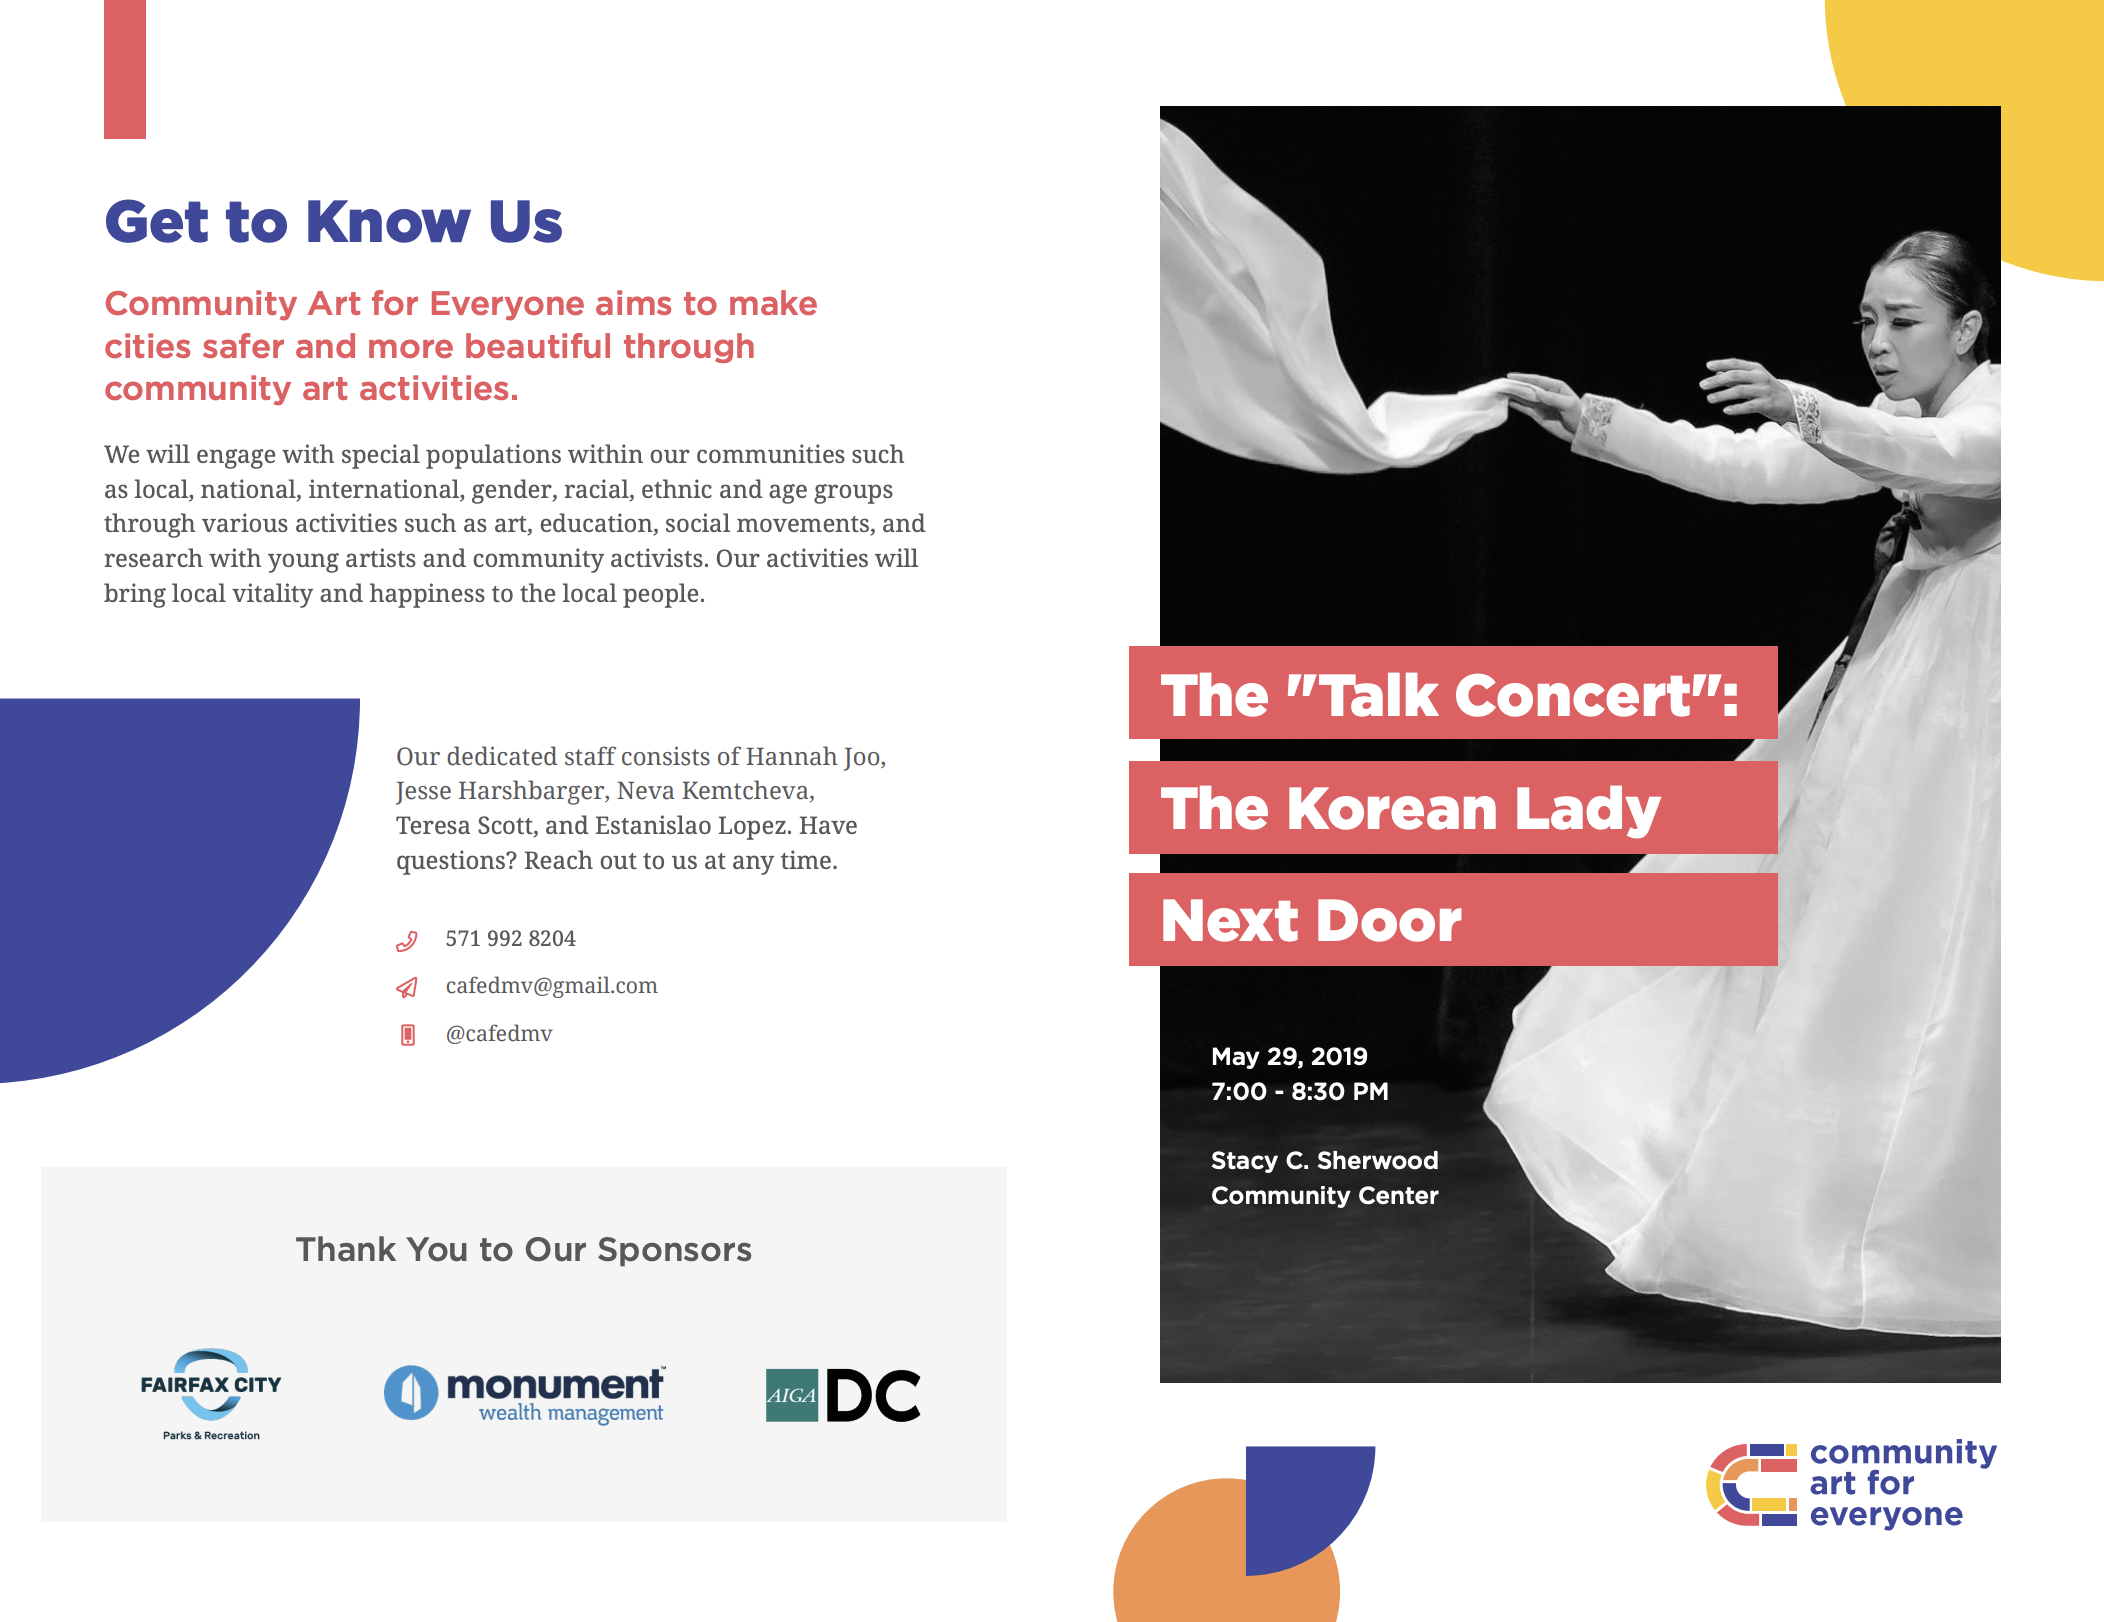 A colorful flyer juxtaposed against a Korean woman dancing in black and white.